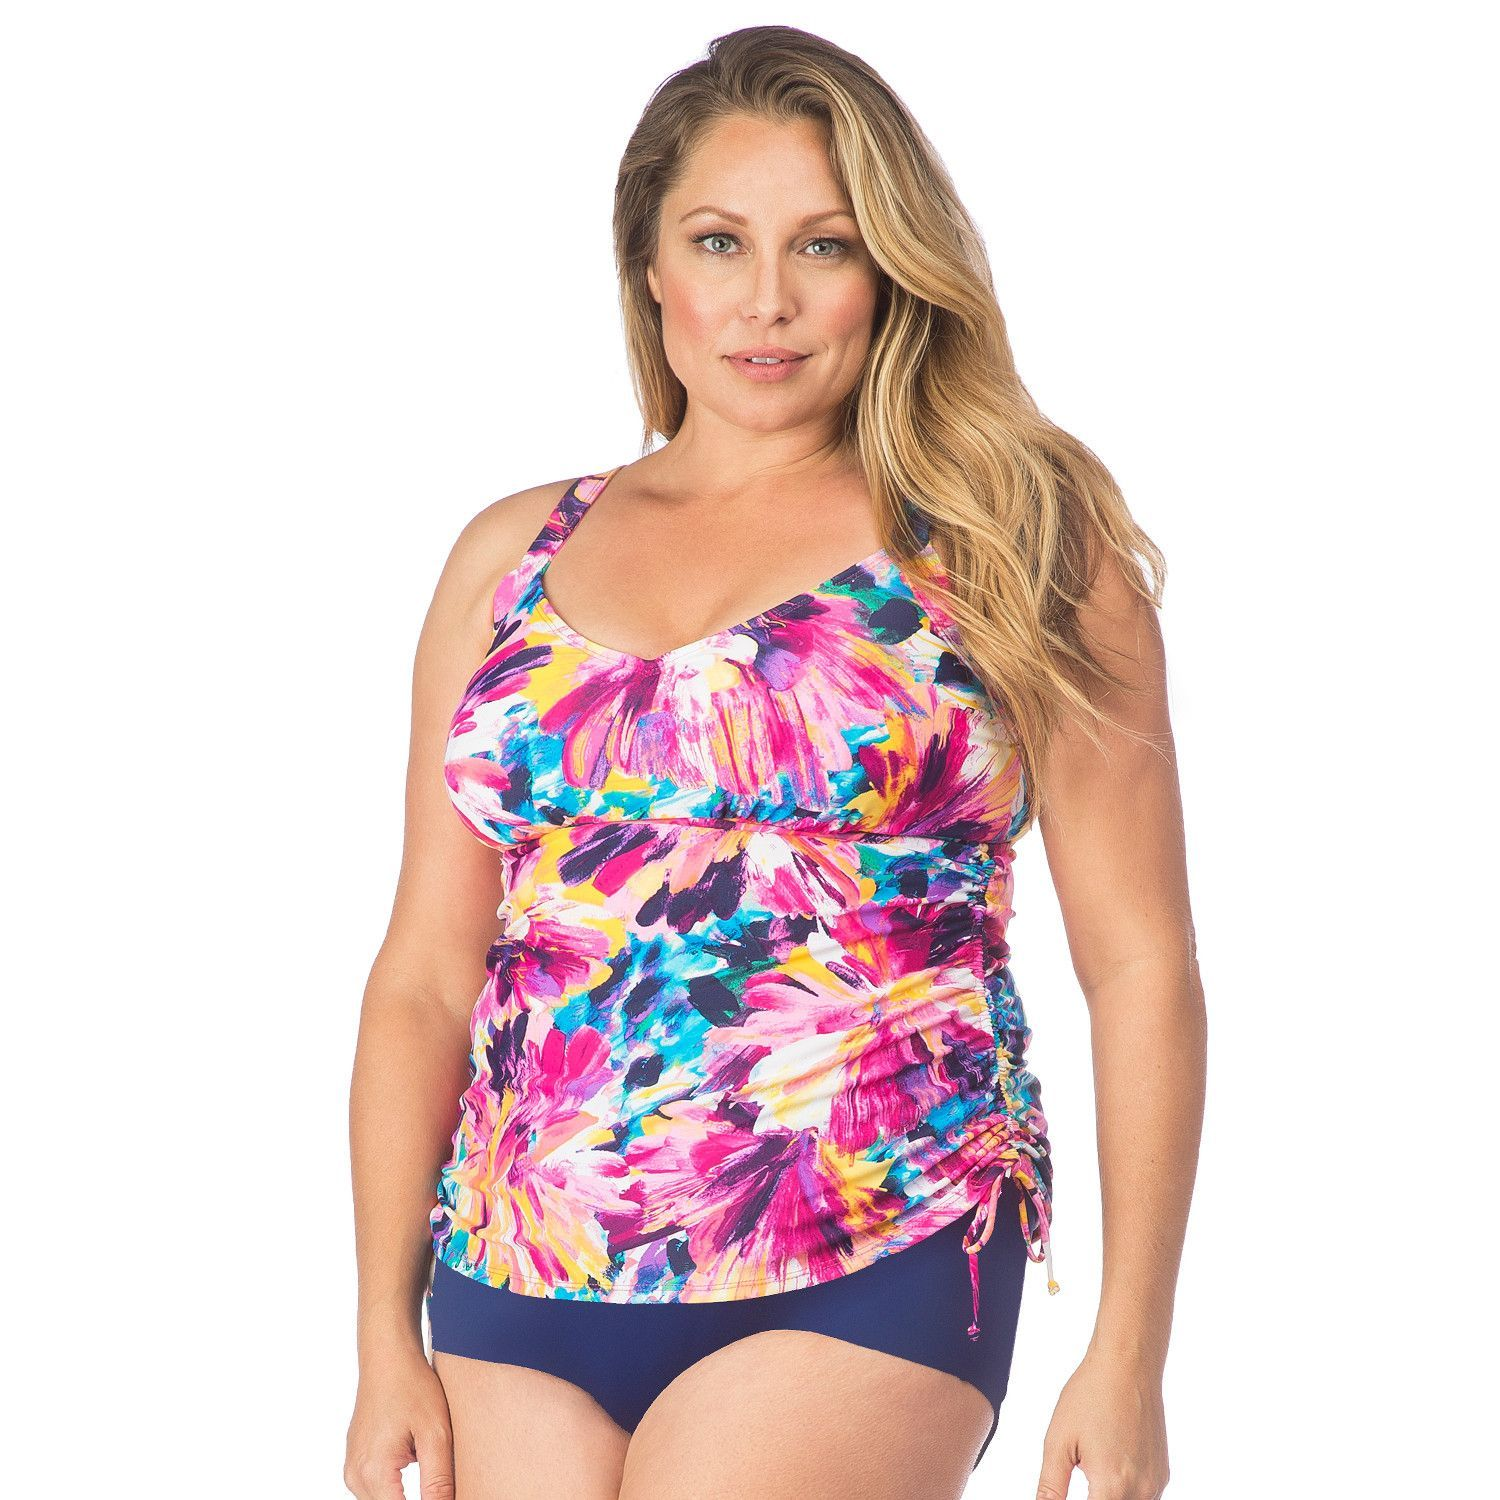 26d64c2ed8 Swimsuits with underwire made by Maxine swimsuits. Full figure swimsuits  are a flattering all around winner for women over 40 looking for full figure  ...